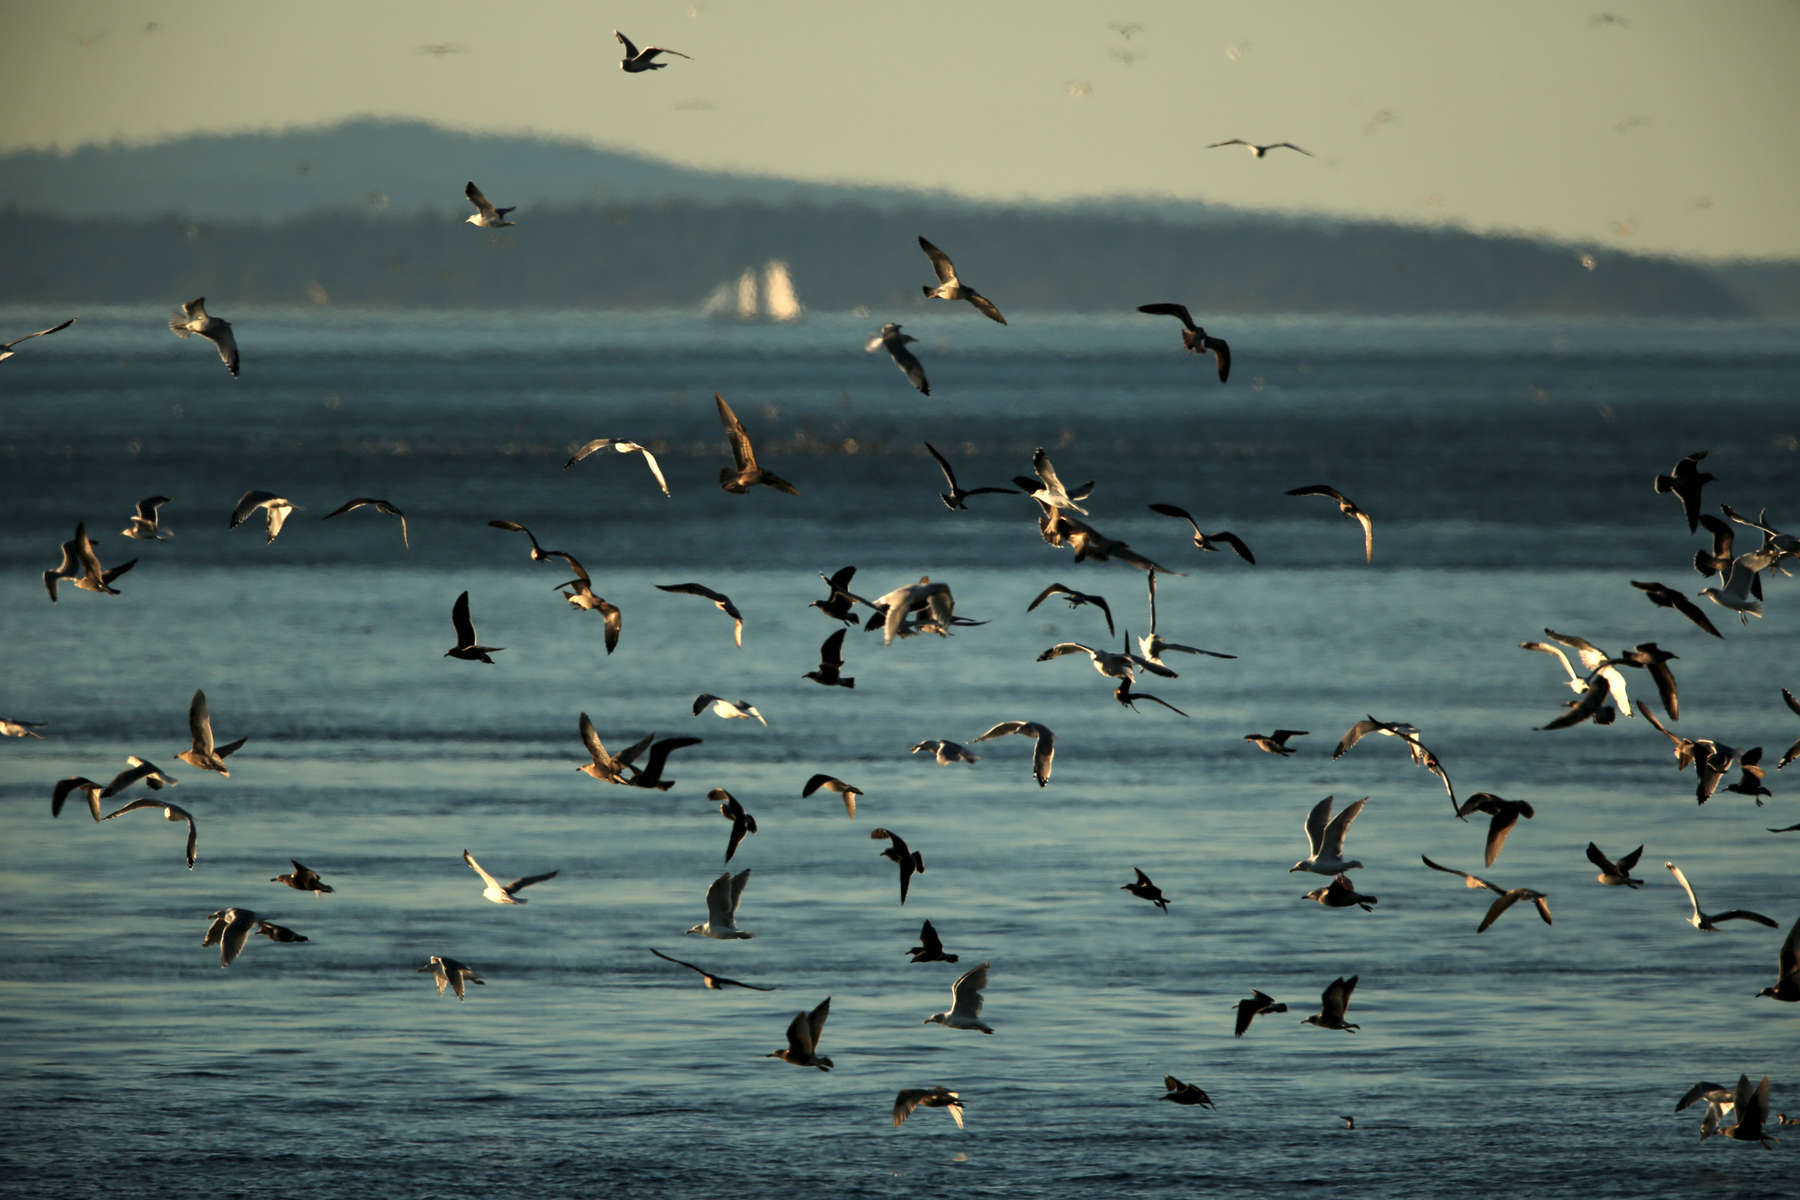 Shore birds flock together as they feed on a school of fish in the water at Lime Kiln Point State Park.